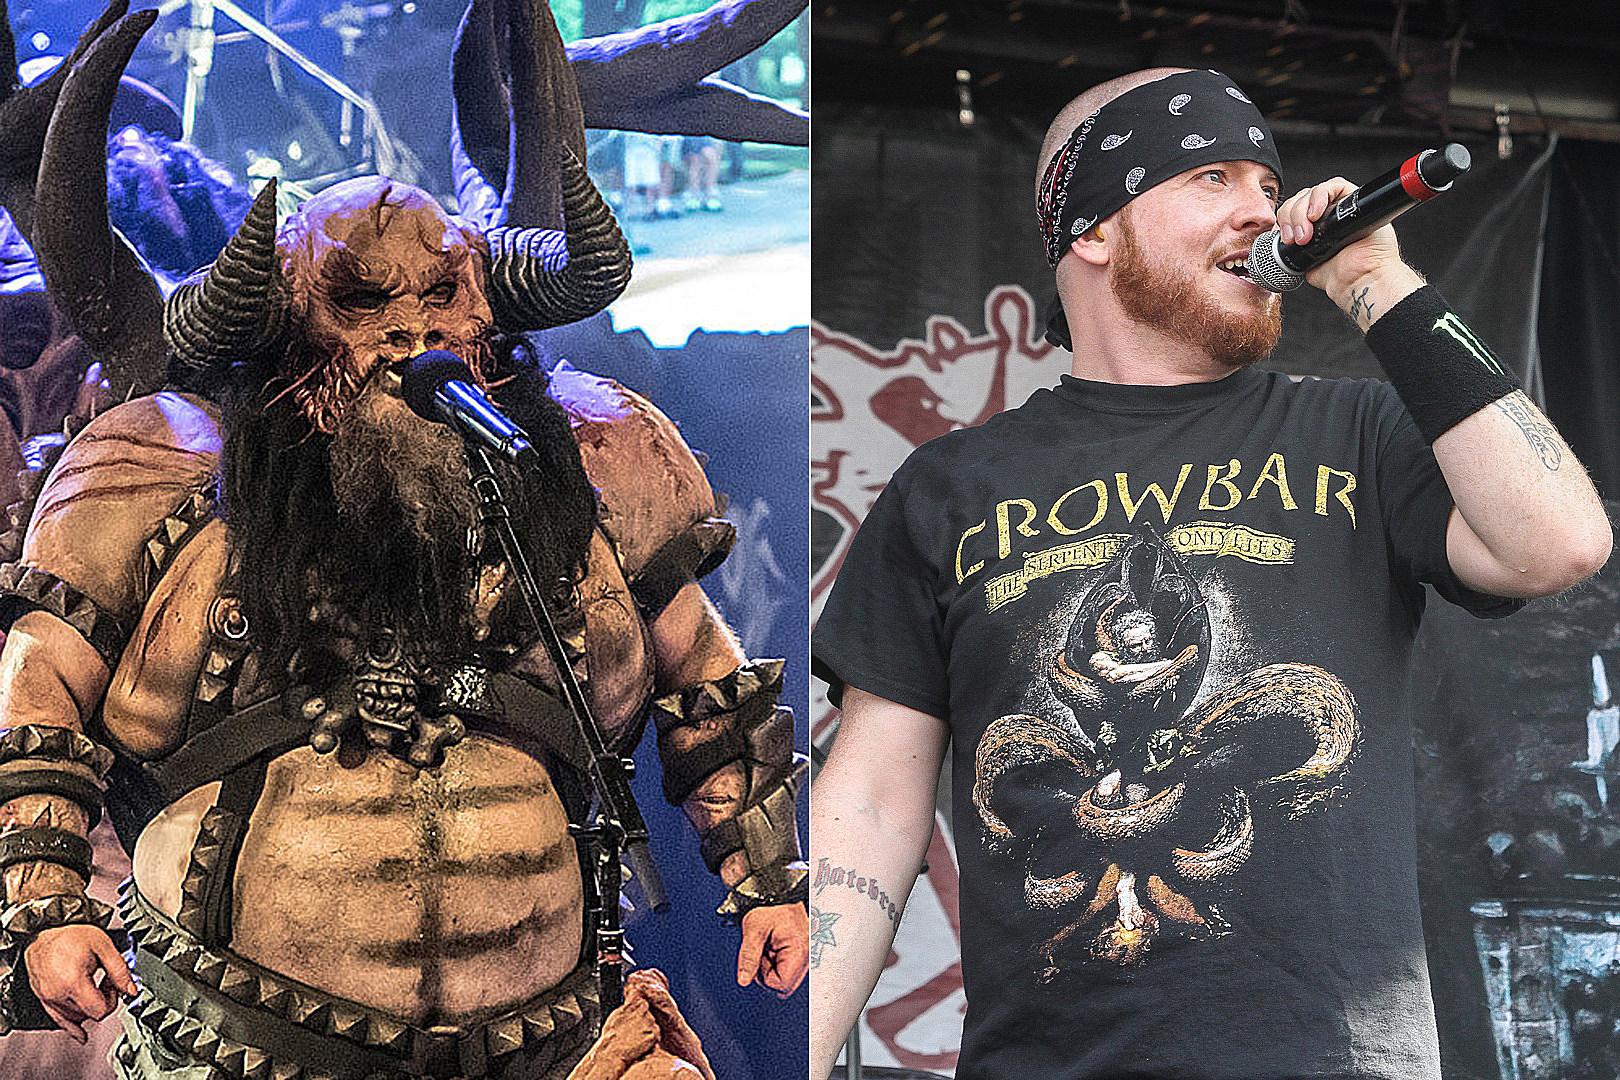 GWAR + Hatebreed Bring 'Gore, Core, Metal + More' on Cross-Country Tour